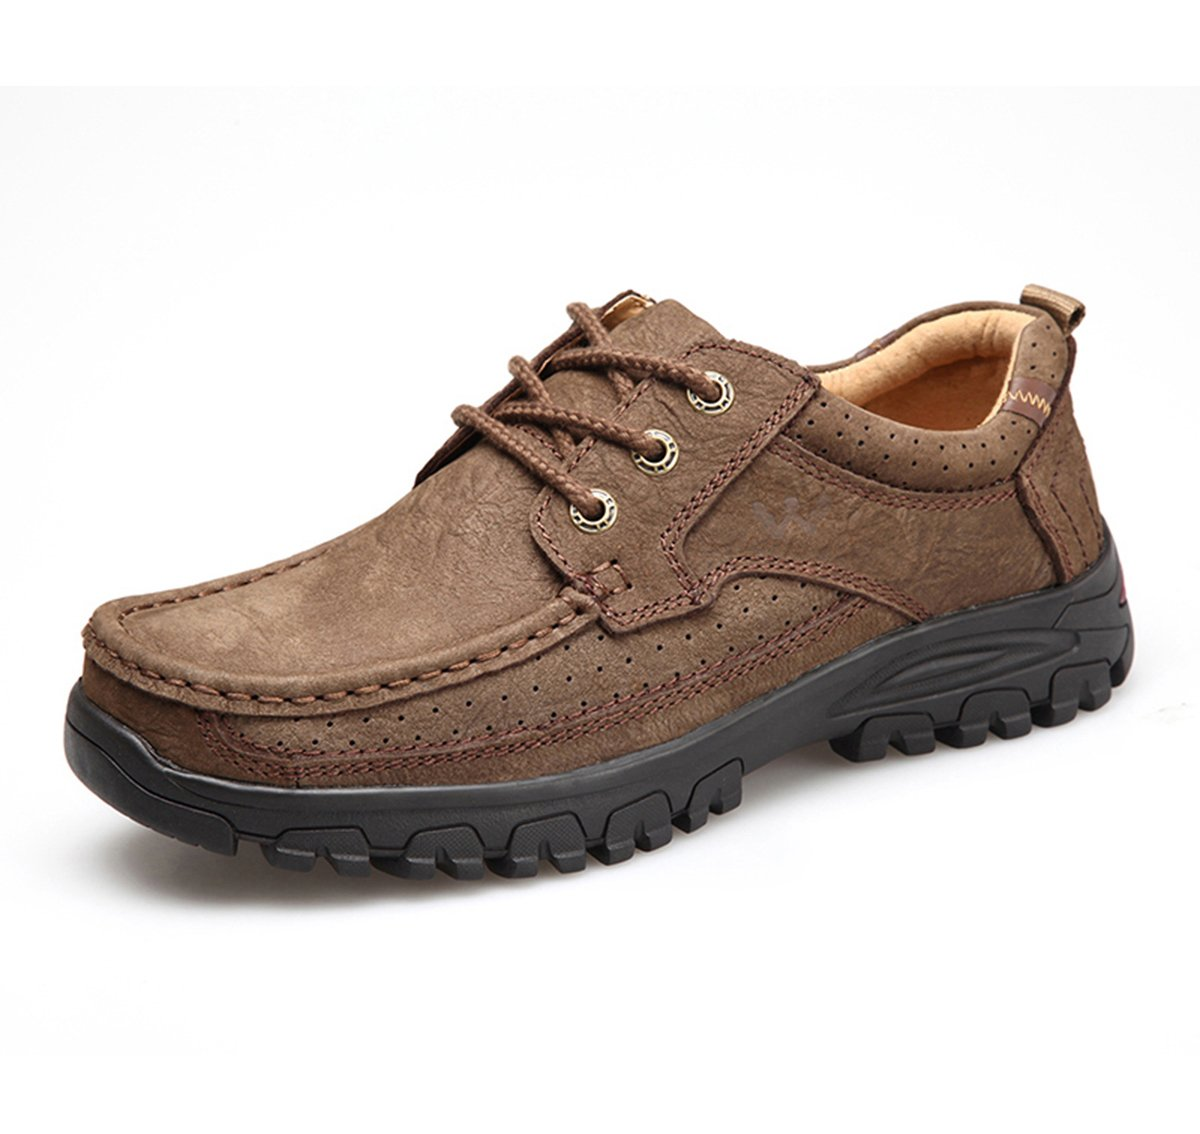 Men's Lace Up Casual Leather Shoe for Walk, Hike, Work and Outdoor Activities H601-39Br